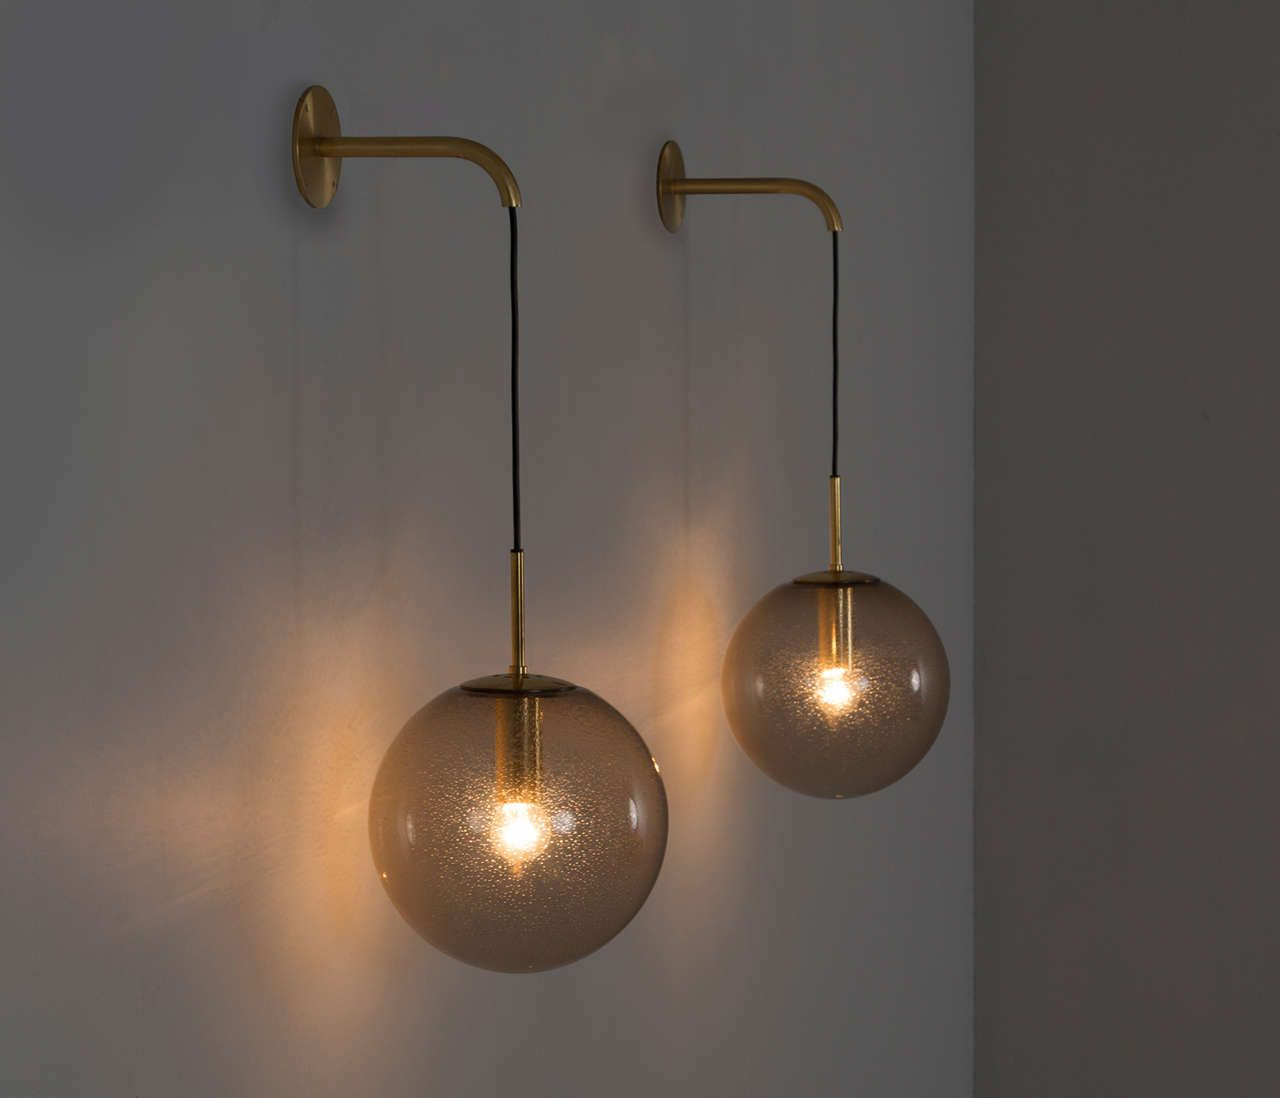 Wall Light Large Set Of 24 1960s Wall Light With Brass Details